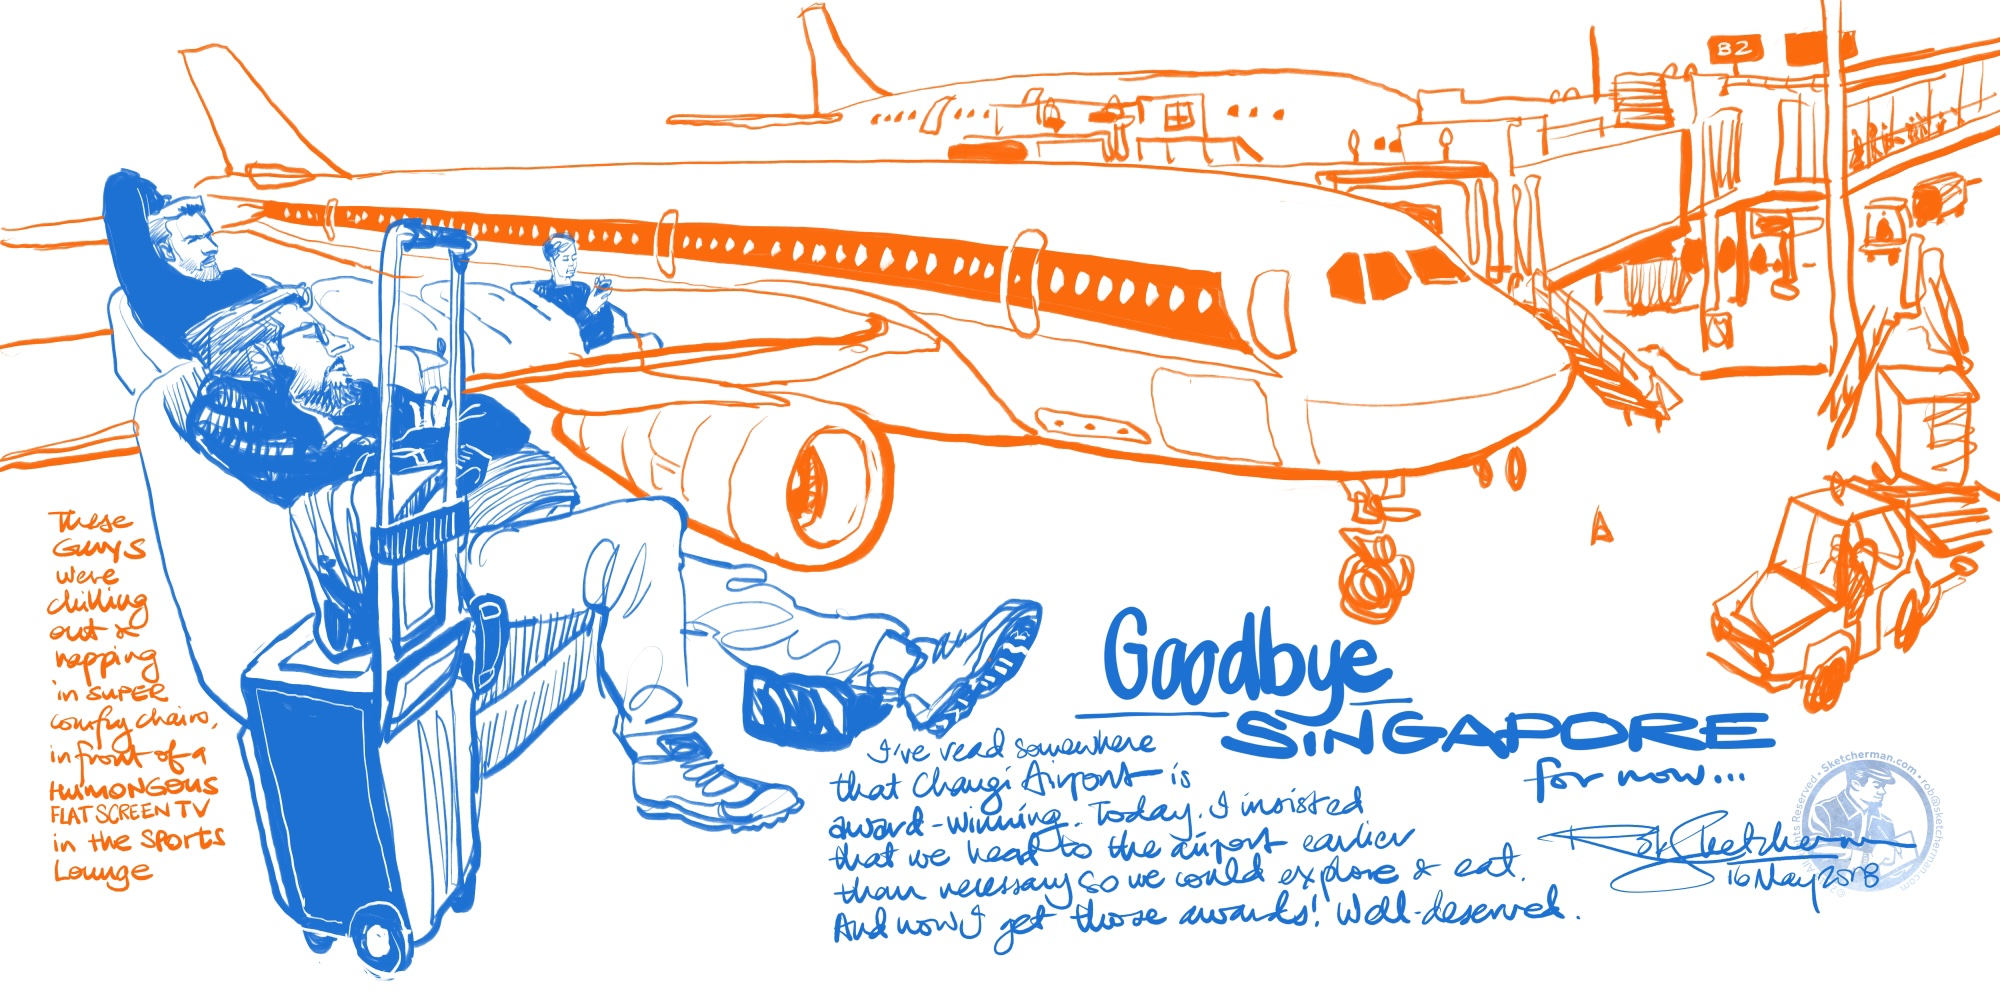 A few minutes before we had to head to the departure gate, and no time for full color. What would have been another travel blur is now a memory I can actually recall because I drew it.